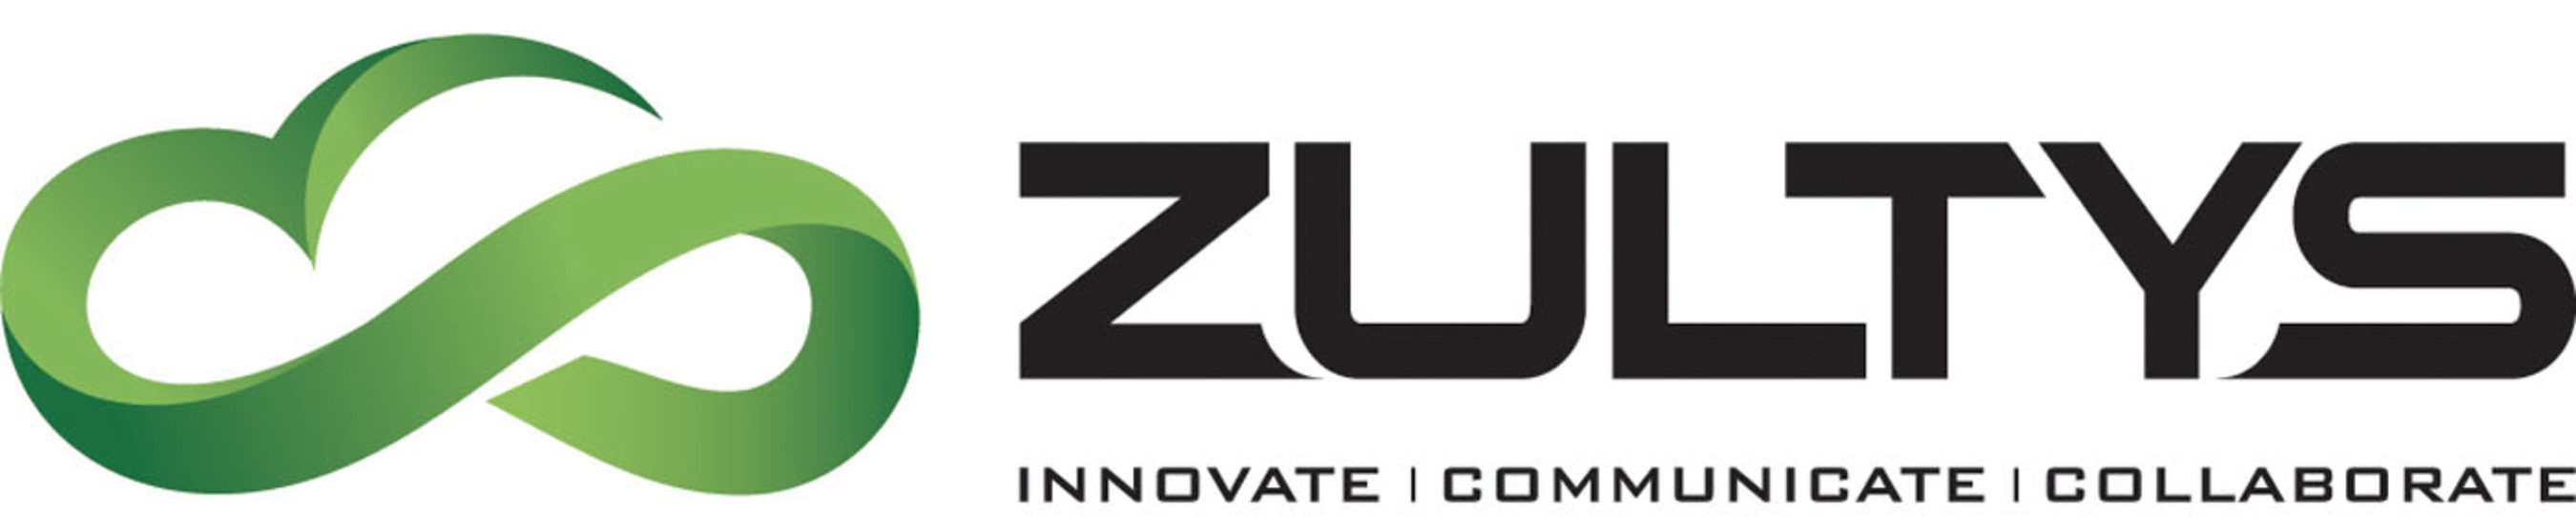 Securematics and Zultys Form a Master Agent Partnership for Distribution of the Zultys Cloud Services Solution